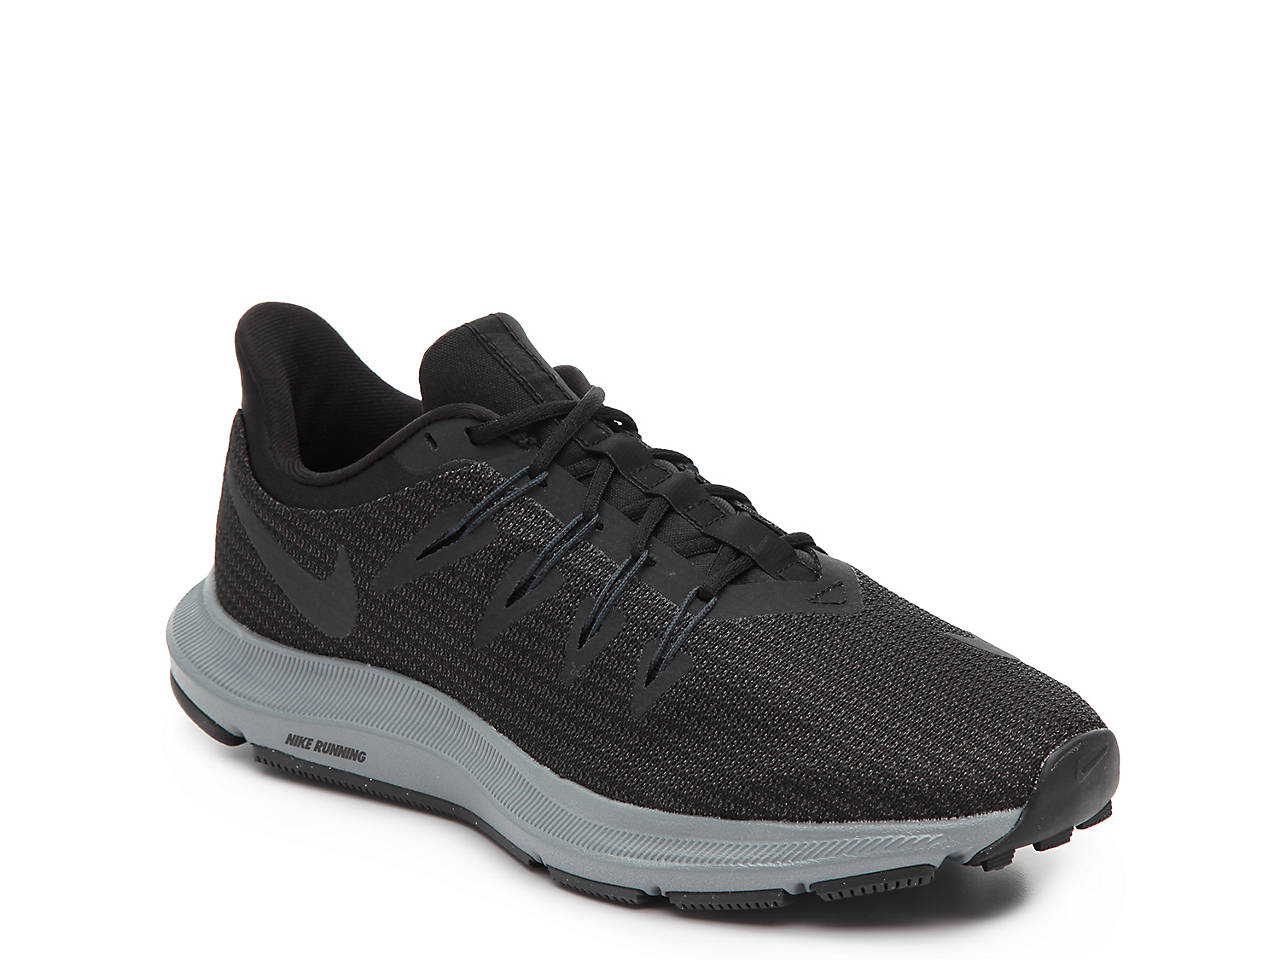 6d1a57fe6f4 Nike Quest Lightweight Running Shoe - Women s Women s Shoes